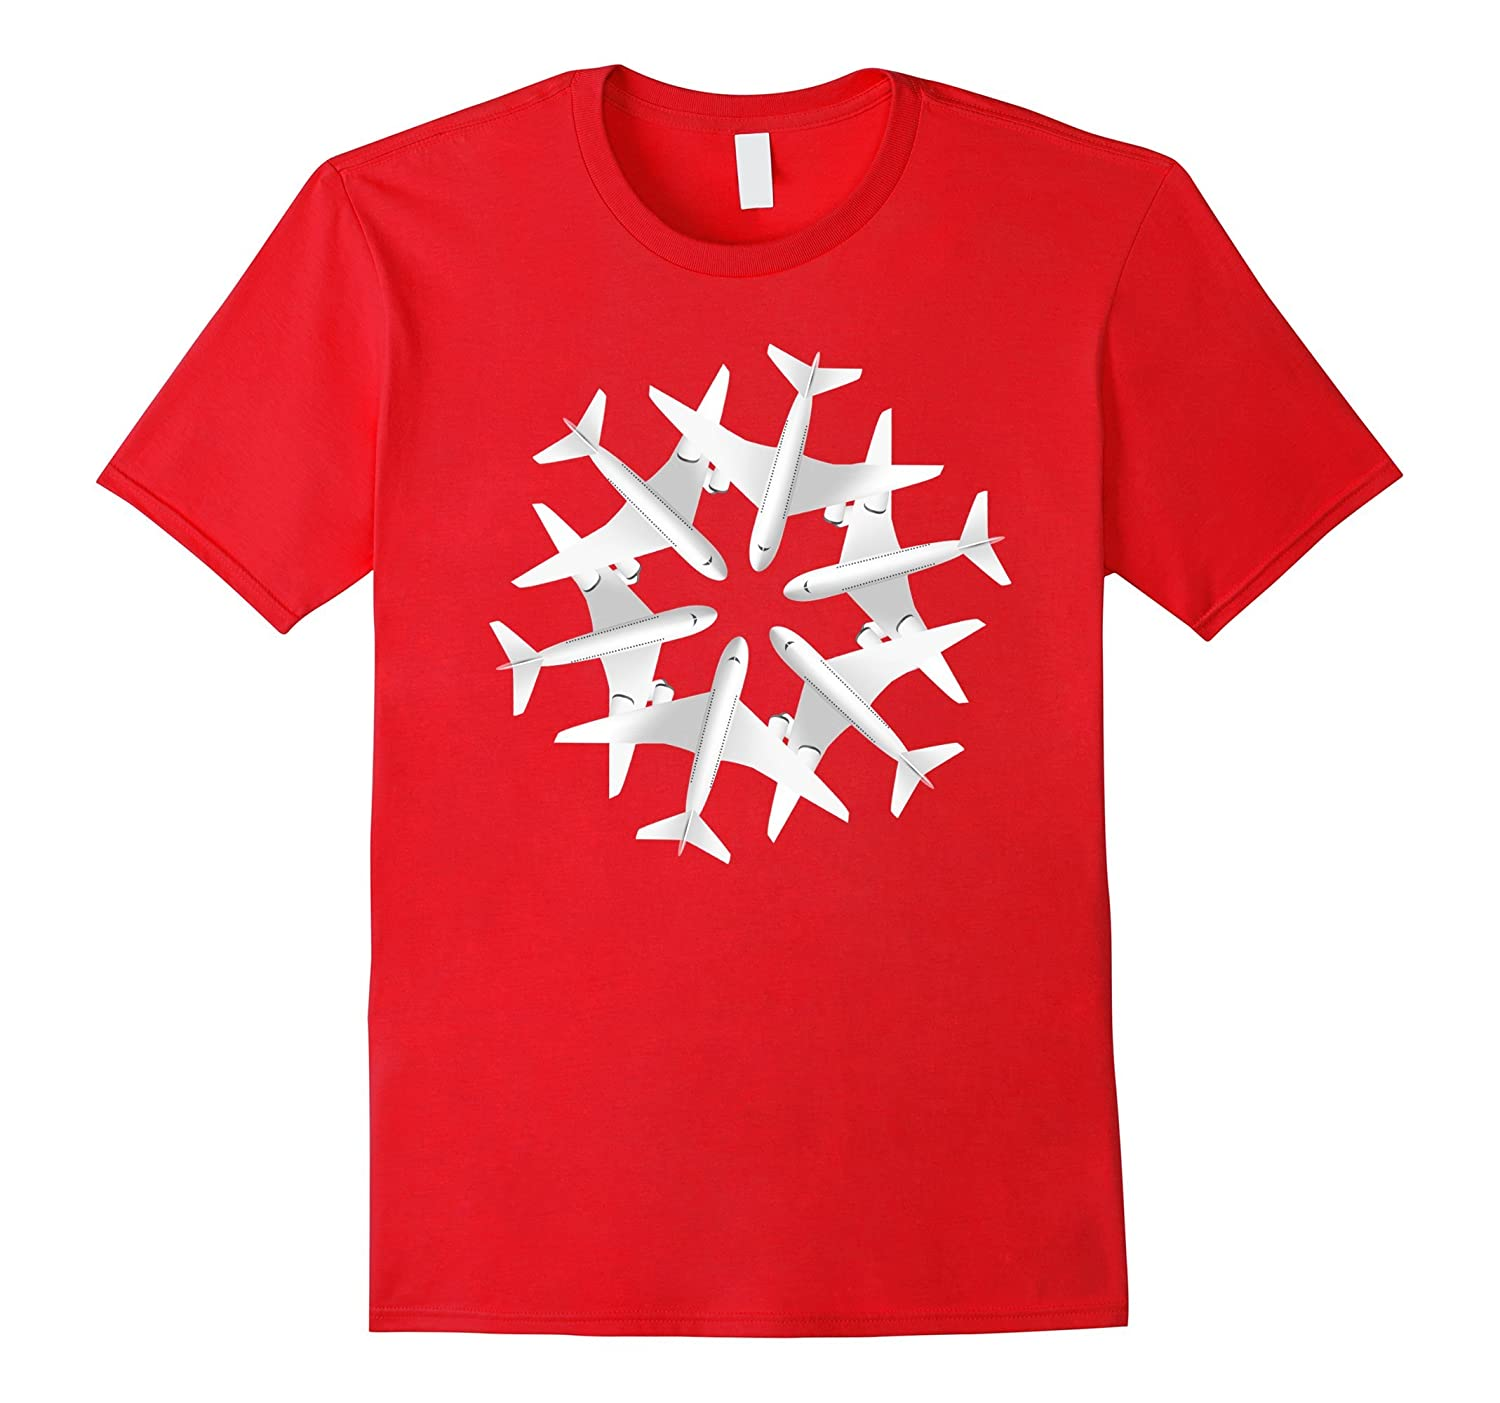 Airplane Snowflake Christmas T-shirt Airlines Xmas Noel-TD